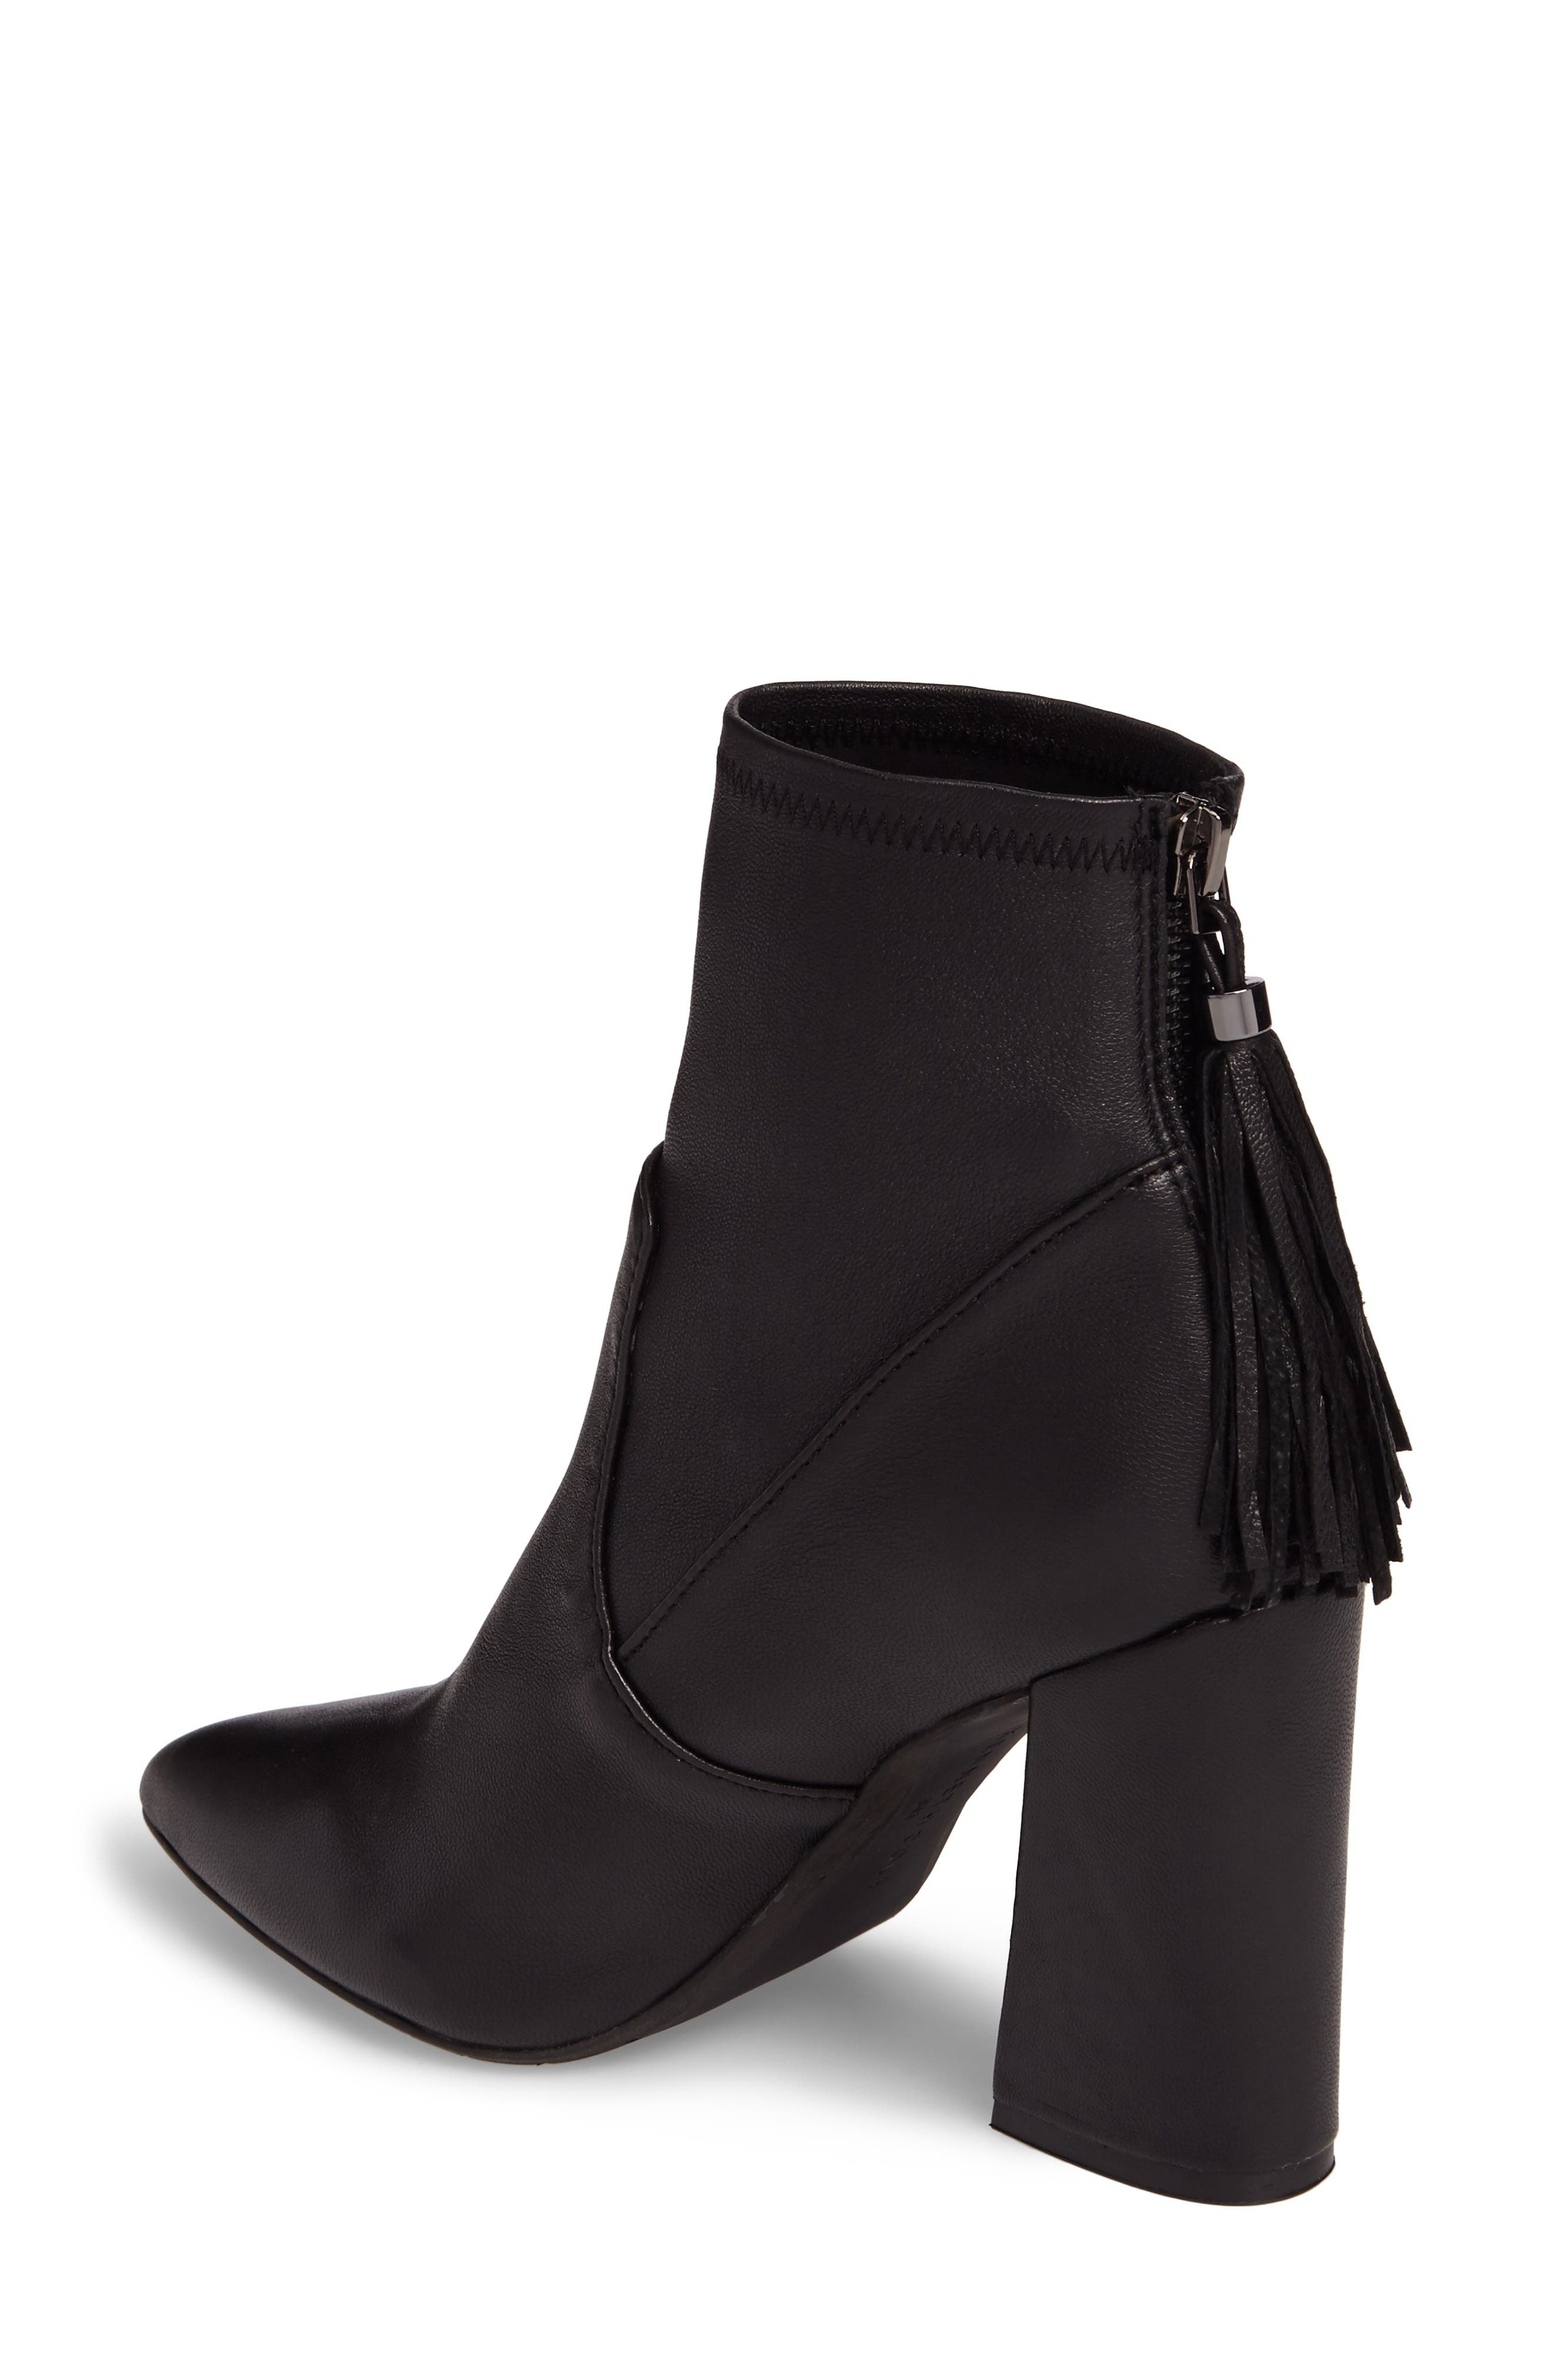 Gracelyn Pointy Toe Bootie,                             Alternate thumbnail 2, color,                             001